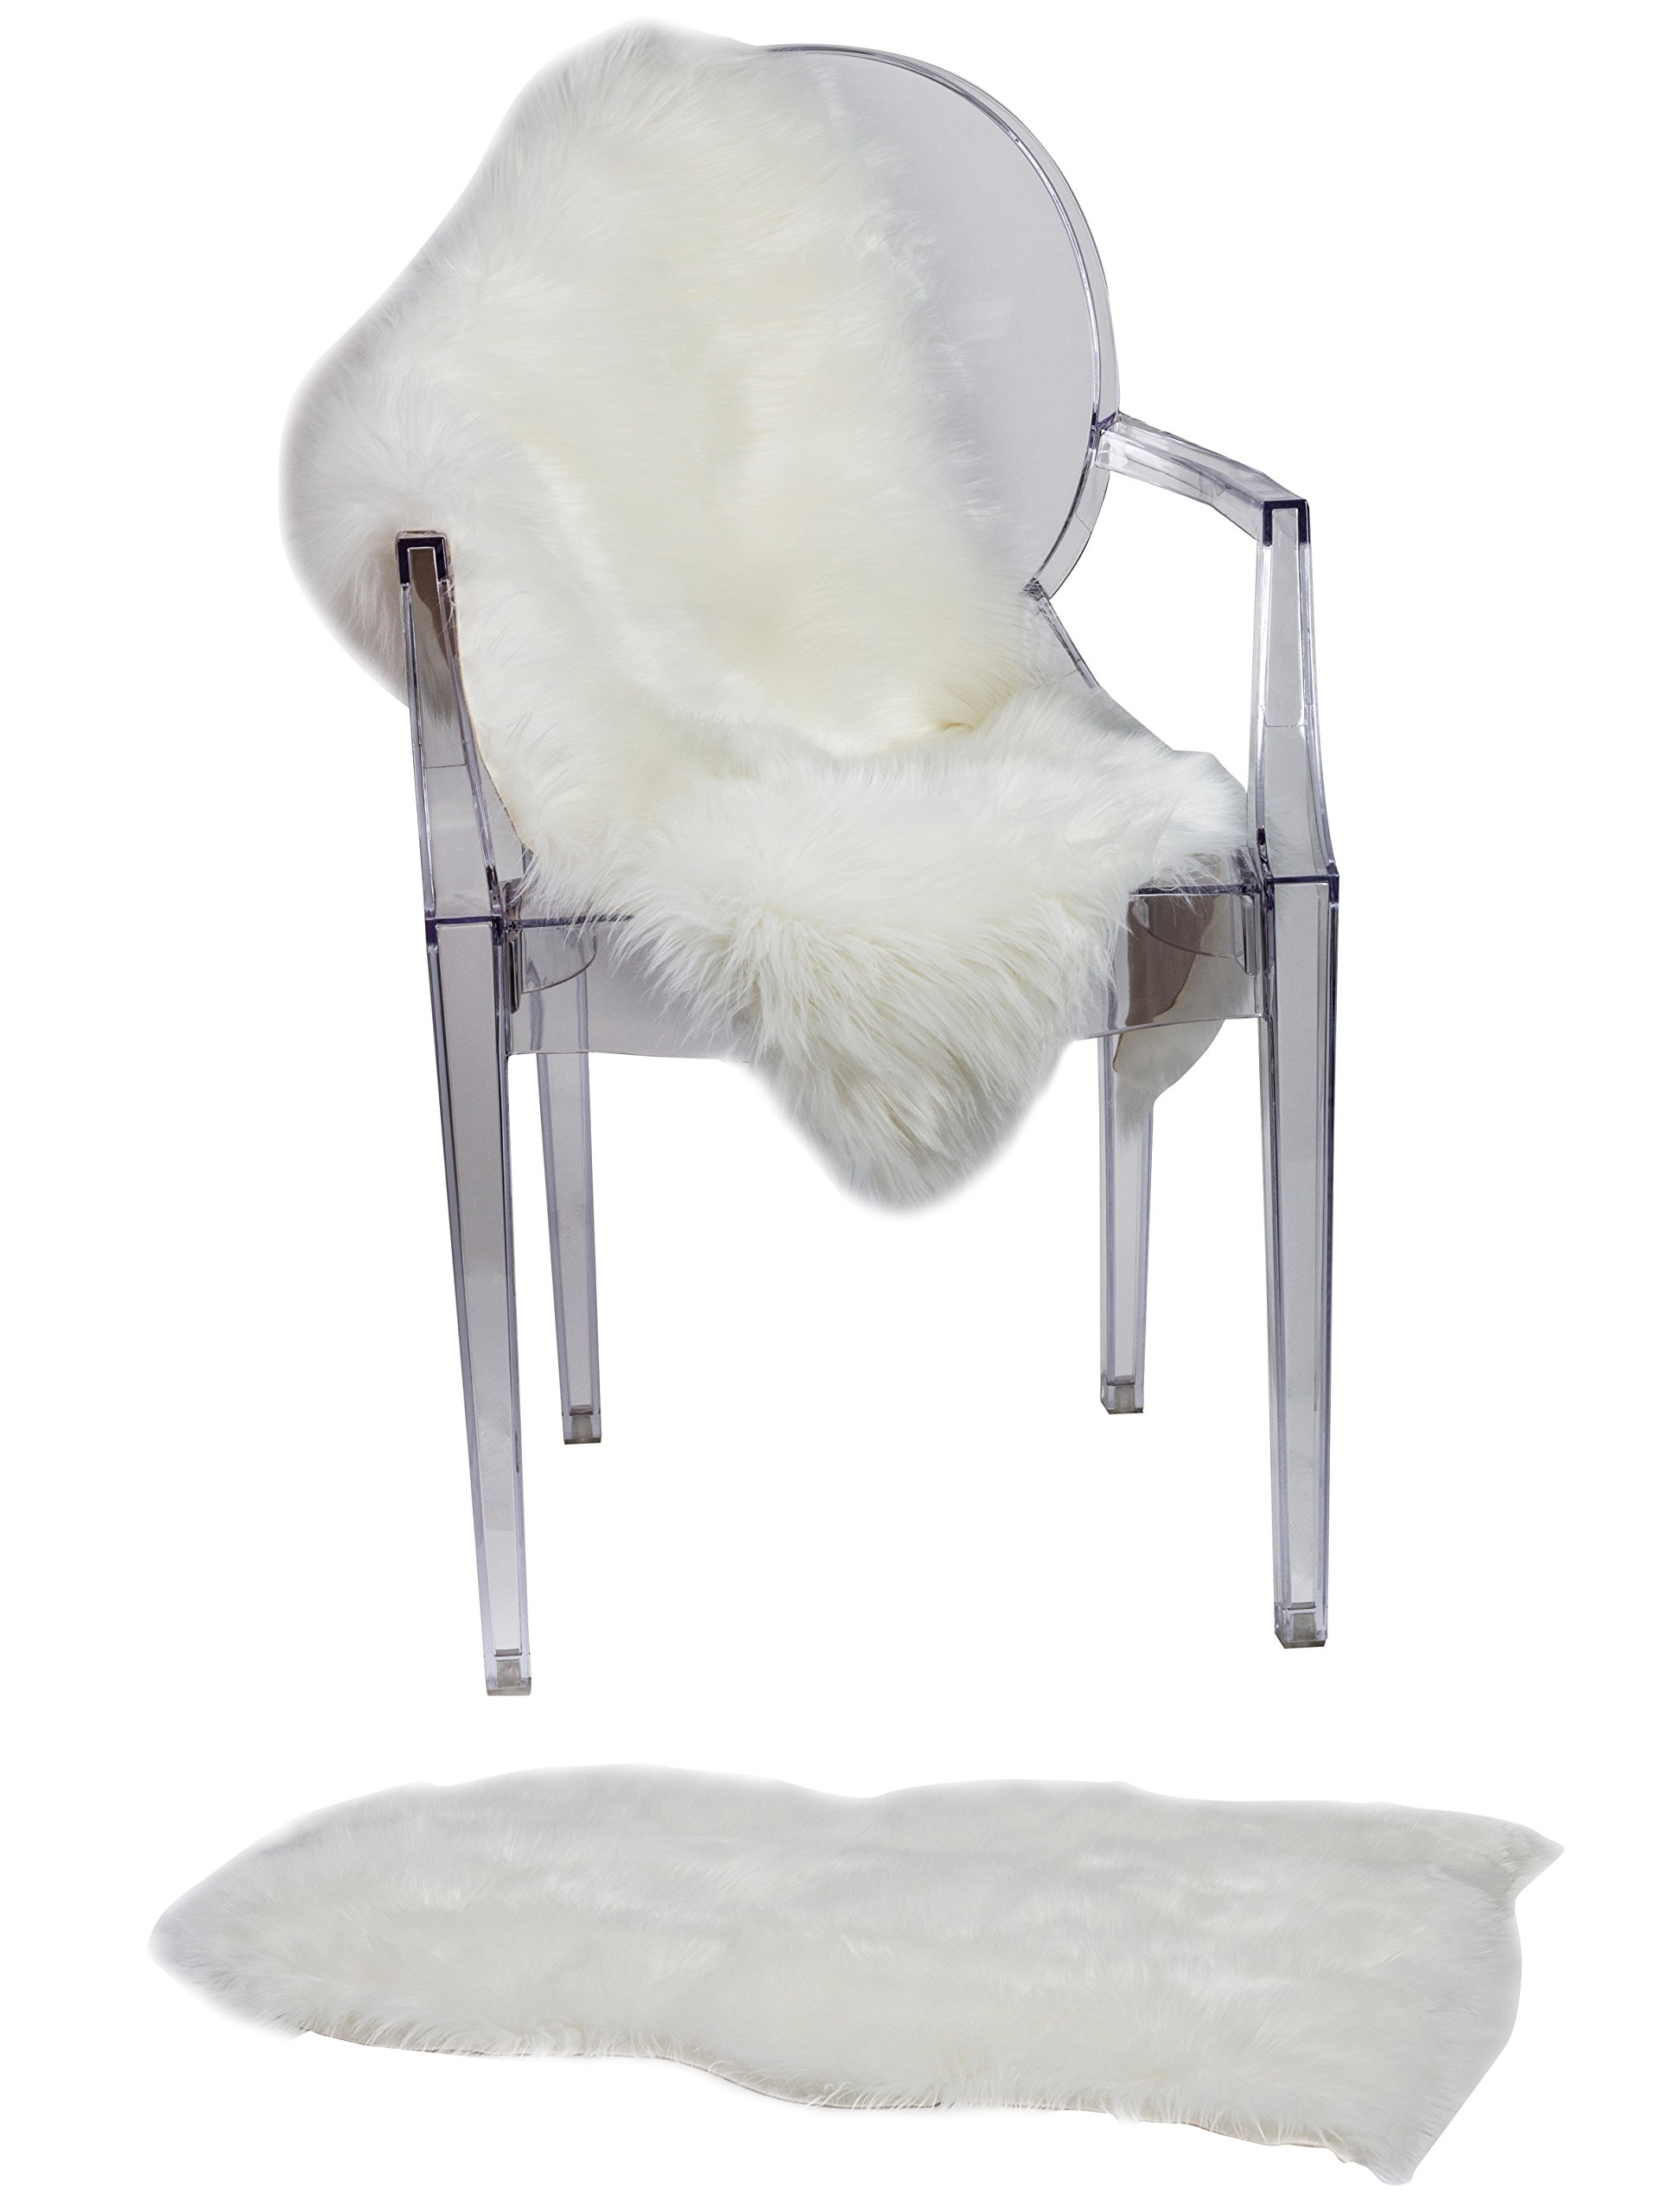 RUGLUSH Super Soft Sheepskin Chair Cover Seat Cushion Pad– Excellent Quality Faux Fur Rug – Modern, Stylish Design – Used As An Area Rug Or Across Your Armchair – Back Lining Suede Fabric 2ft x 3ft